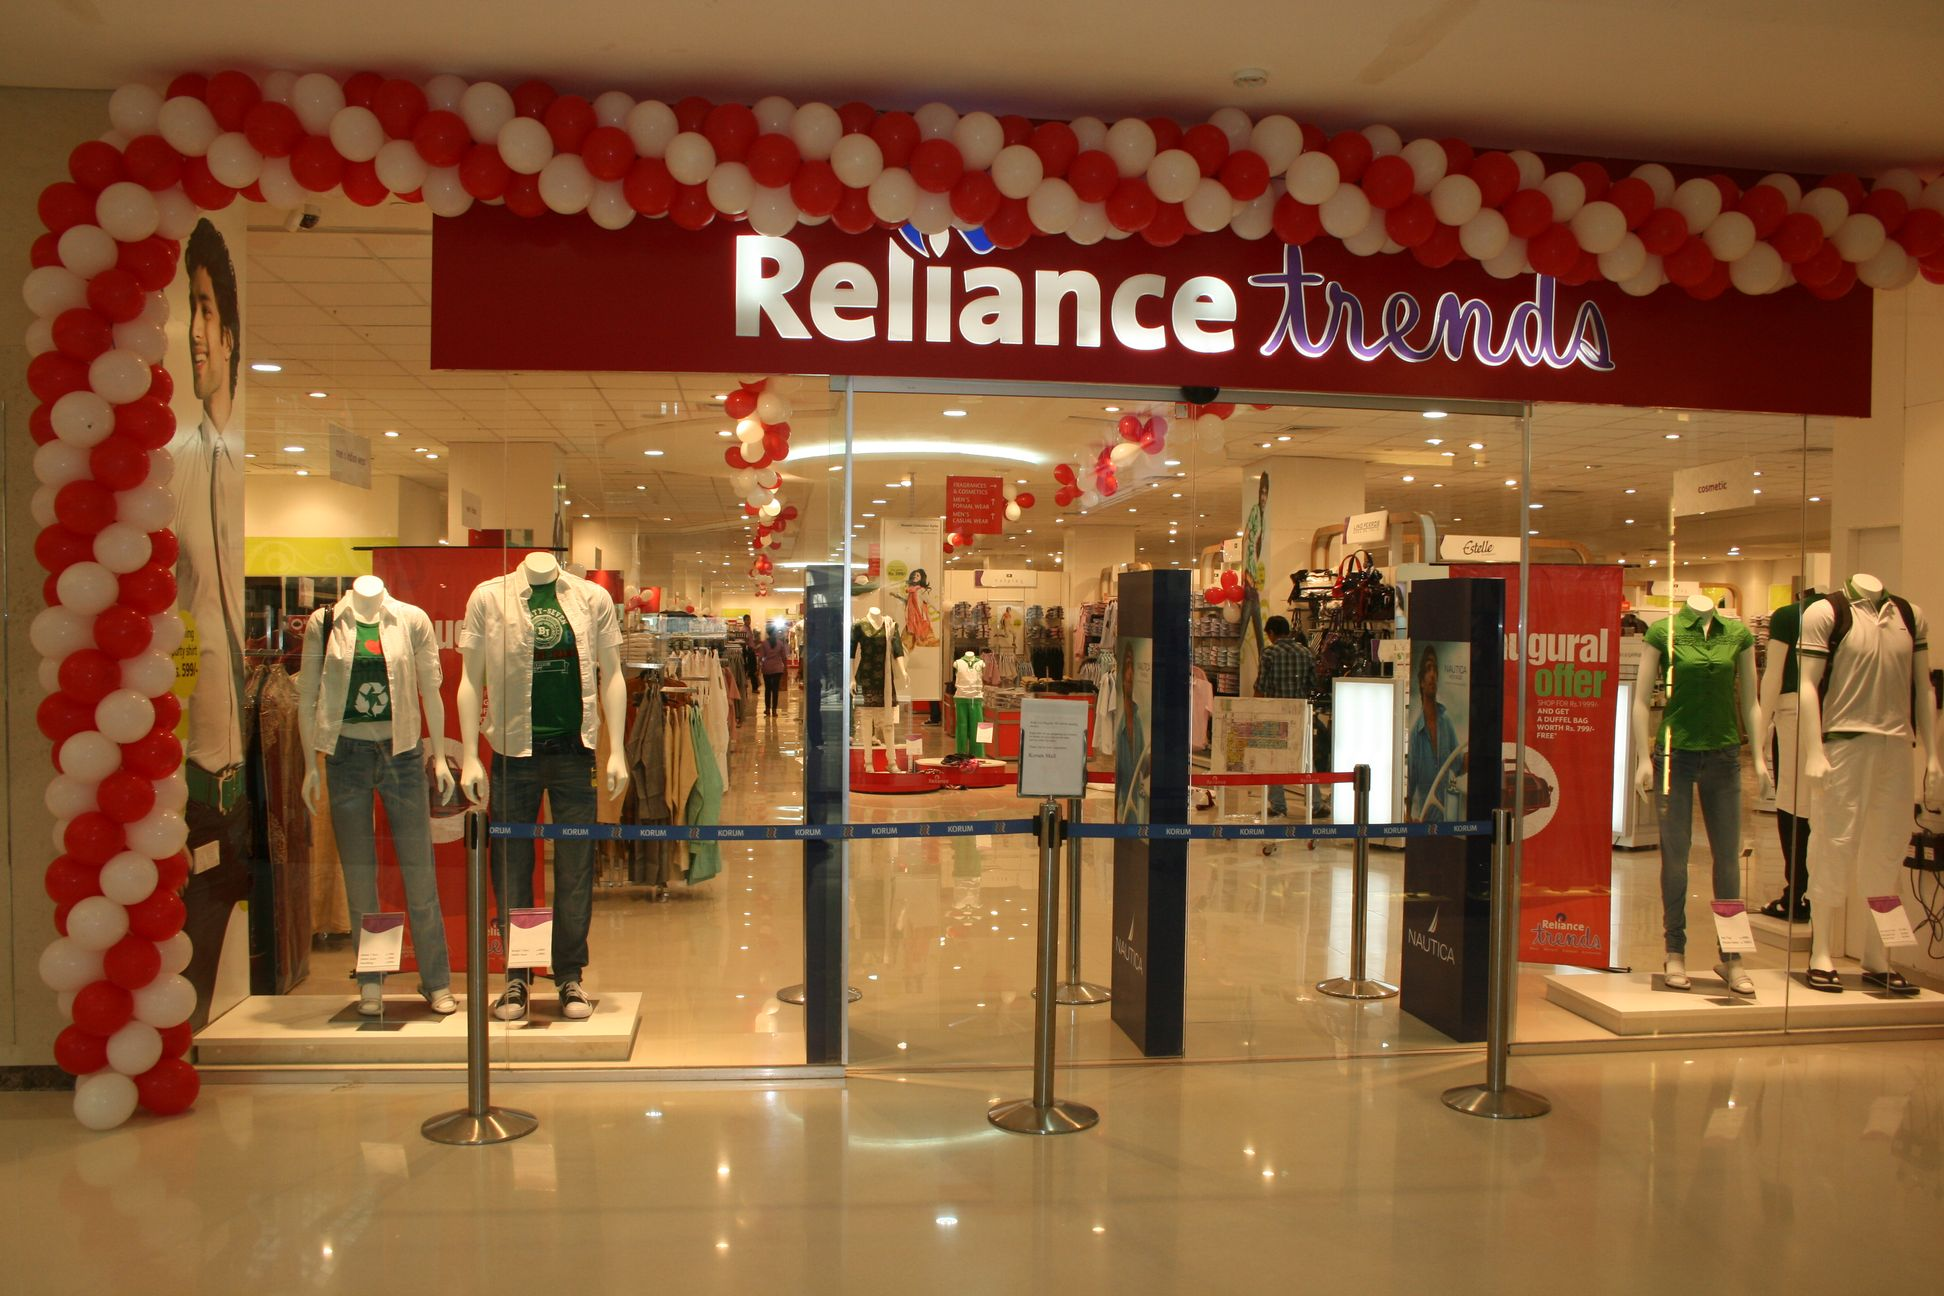 literature review of shopping mall in retail marketing in india 12 indian organized retail market: indian organized retail market is growing at a fast pace due to the boom in the india retail industry in 2005, the retail industry in india amounted to rs 10,000 billion accounting for about 10% to the country's gdp.